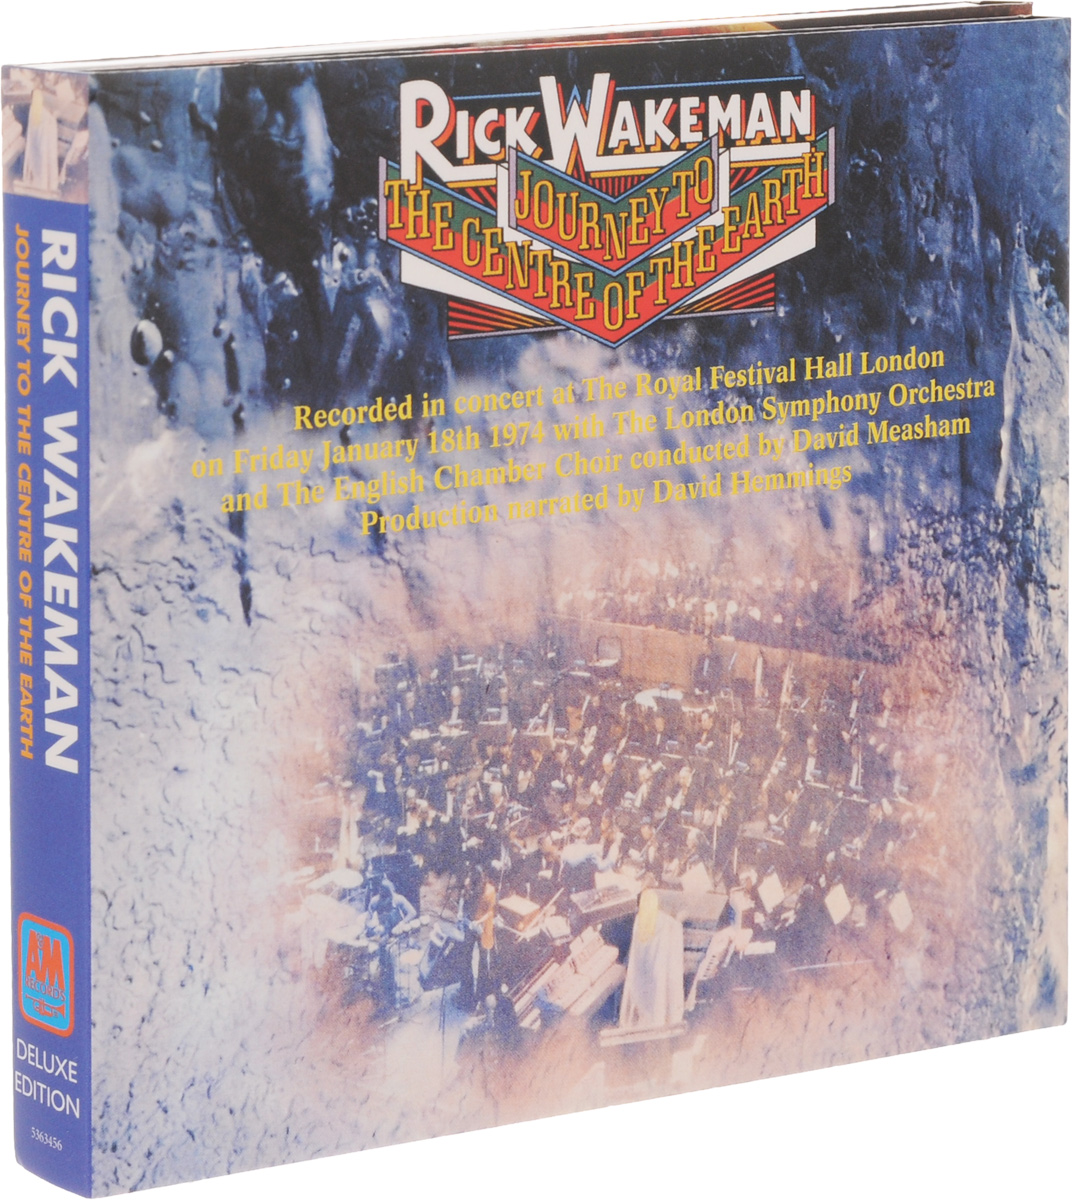 Рик Уэйкман Rick Wakeman. Journey To The Centre Of The Eart. Deluxe Edition (CD + DVD) рик уэйкман rick wakeman journey to the centre of the eart deluxe edition cd dvd